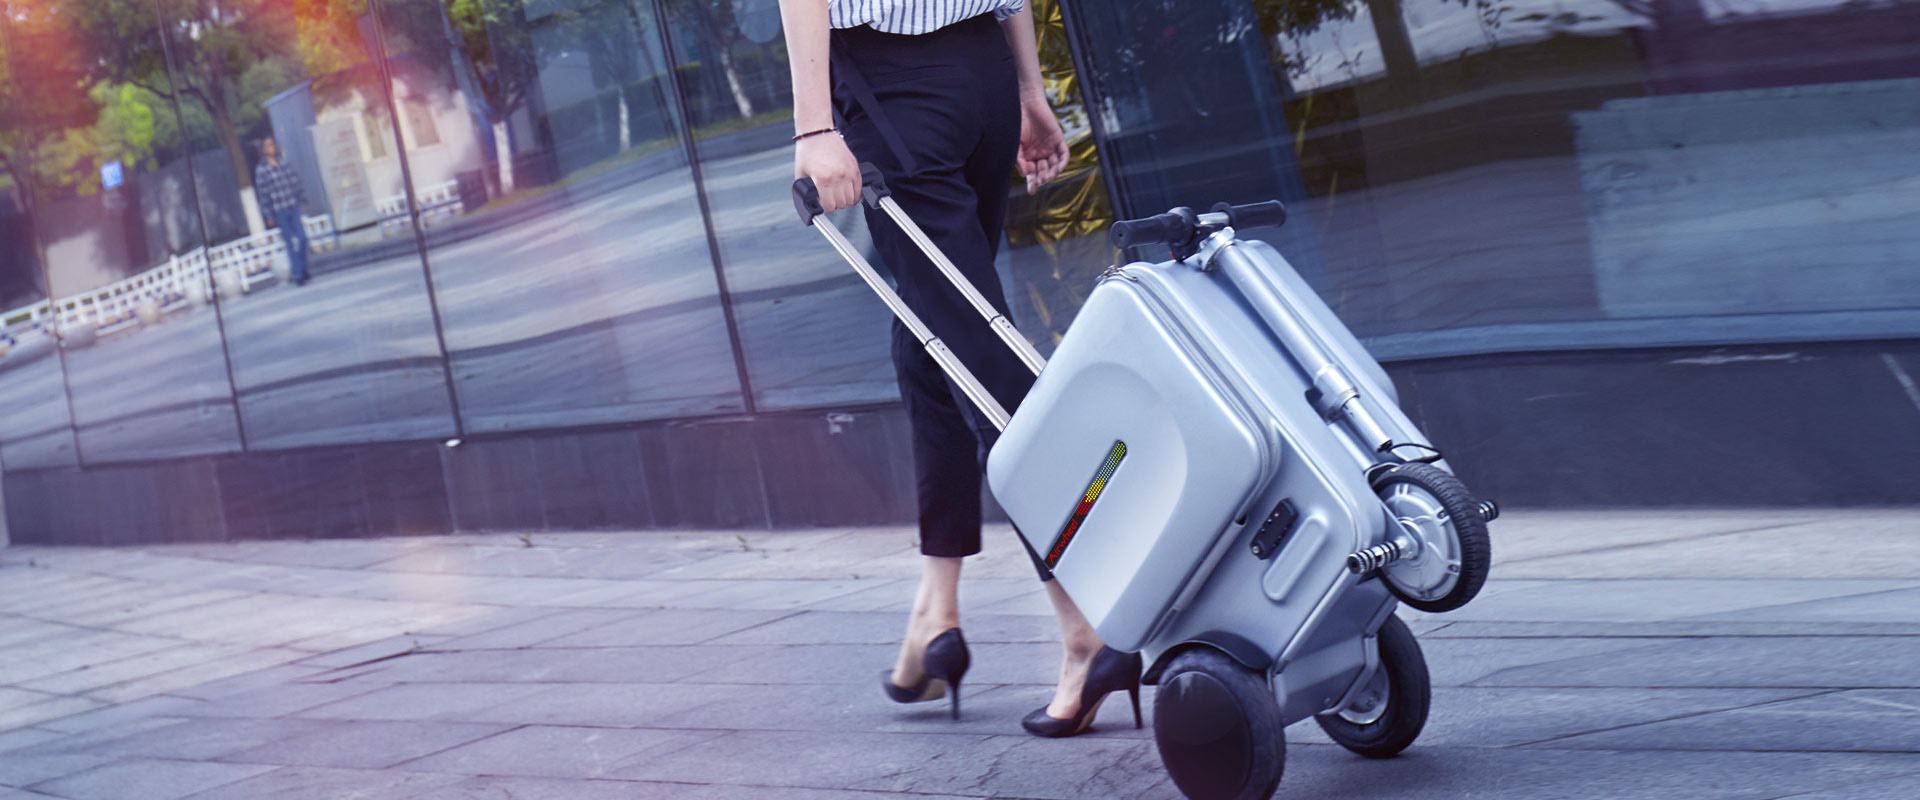 Airwheel SE3 الأمتعة سكوتر